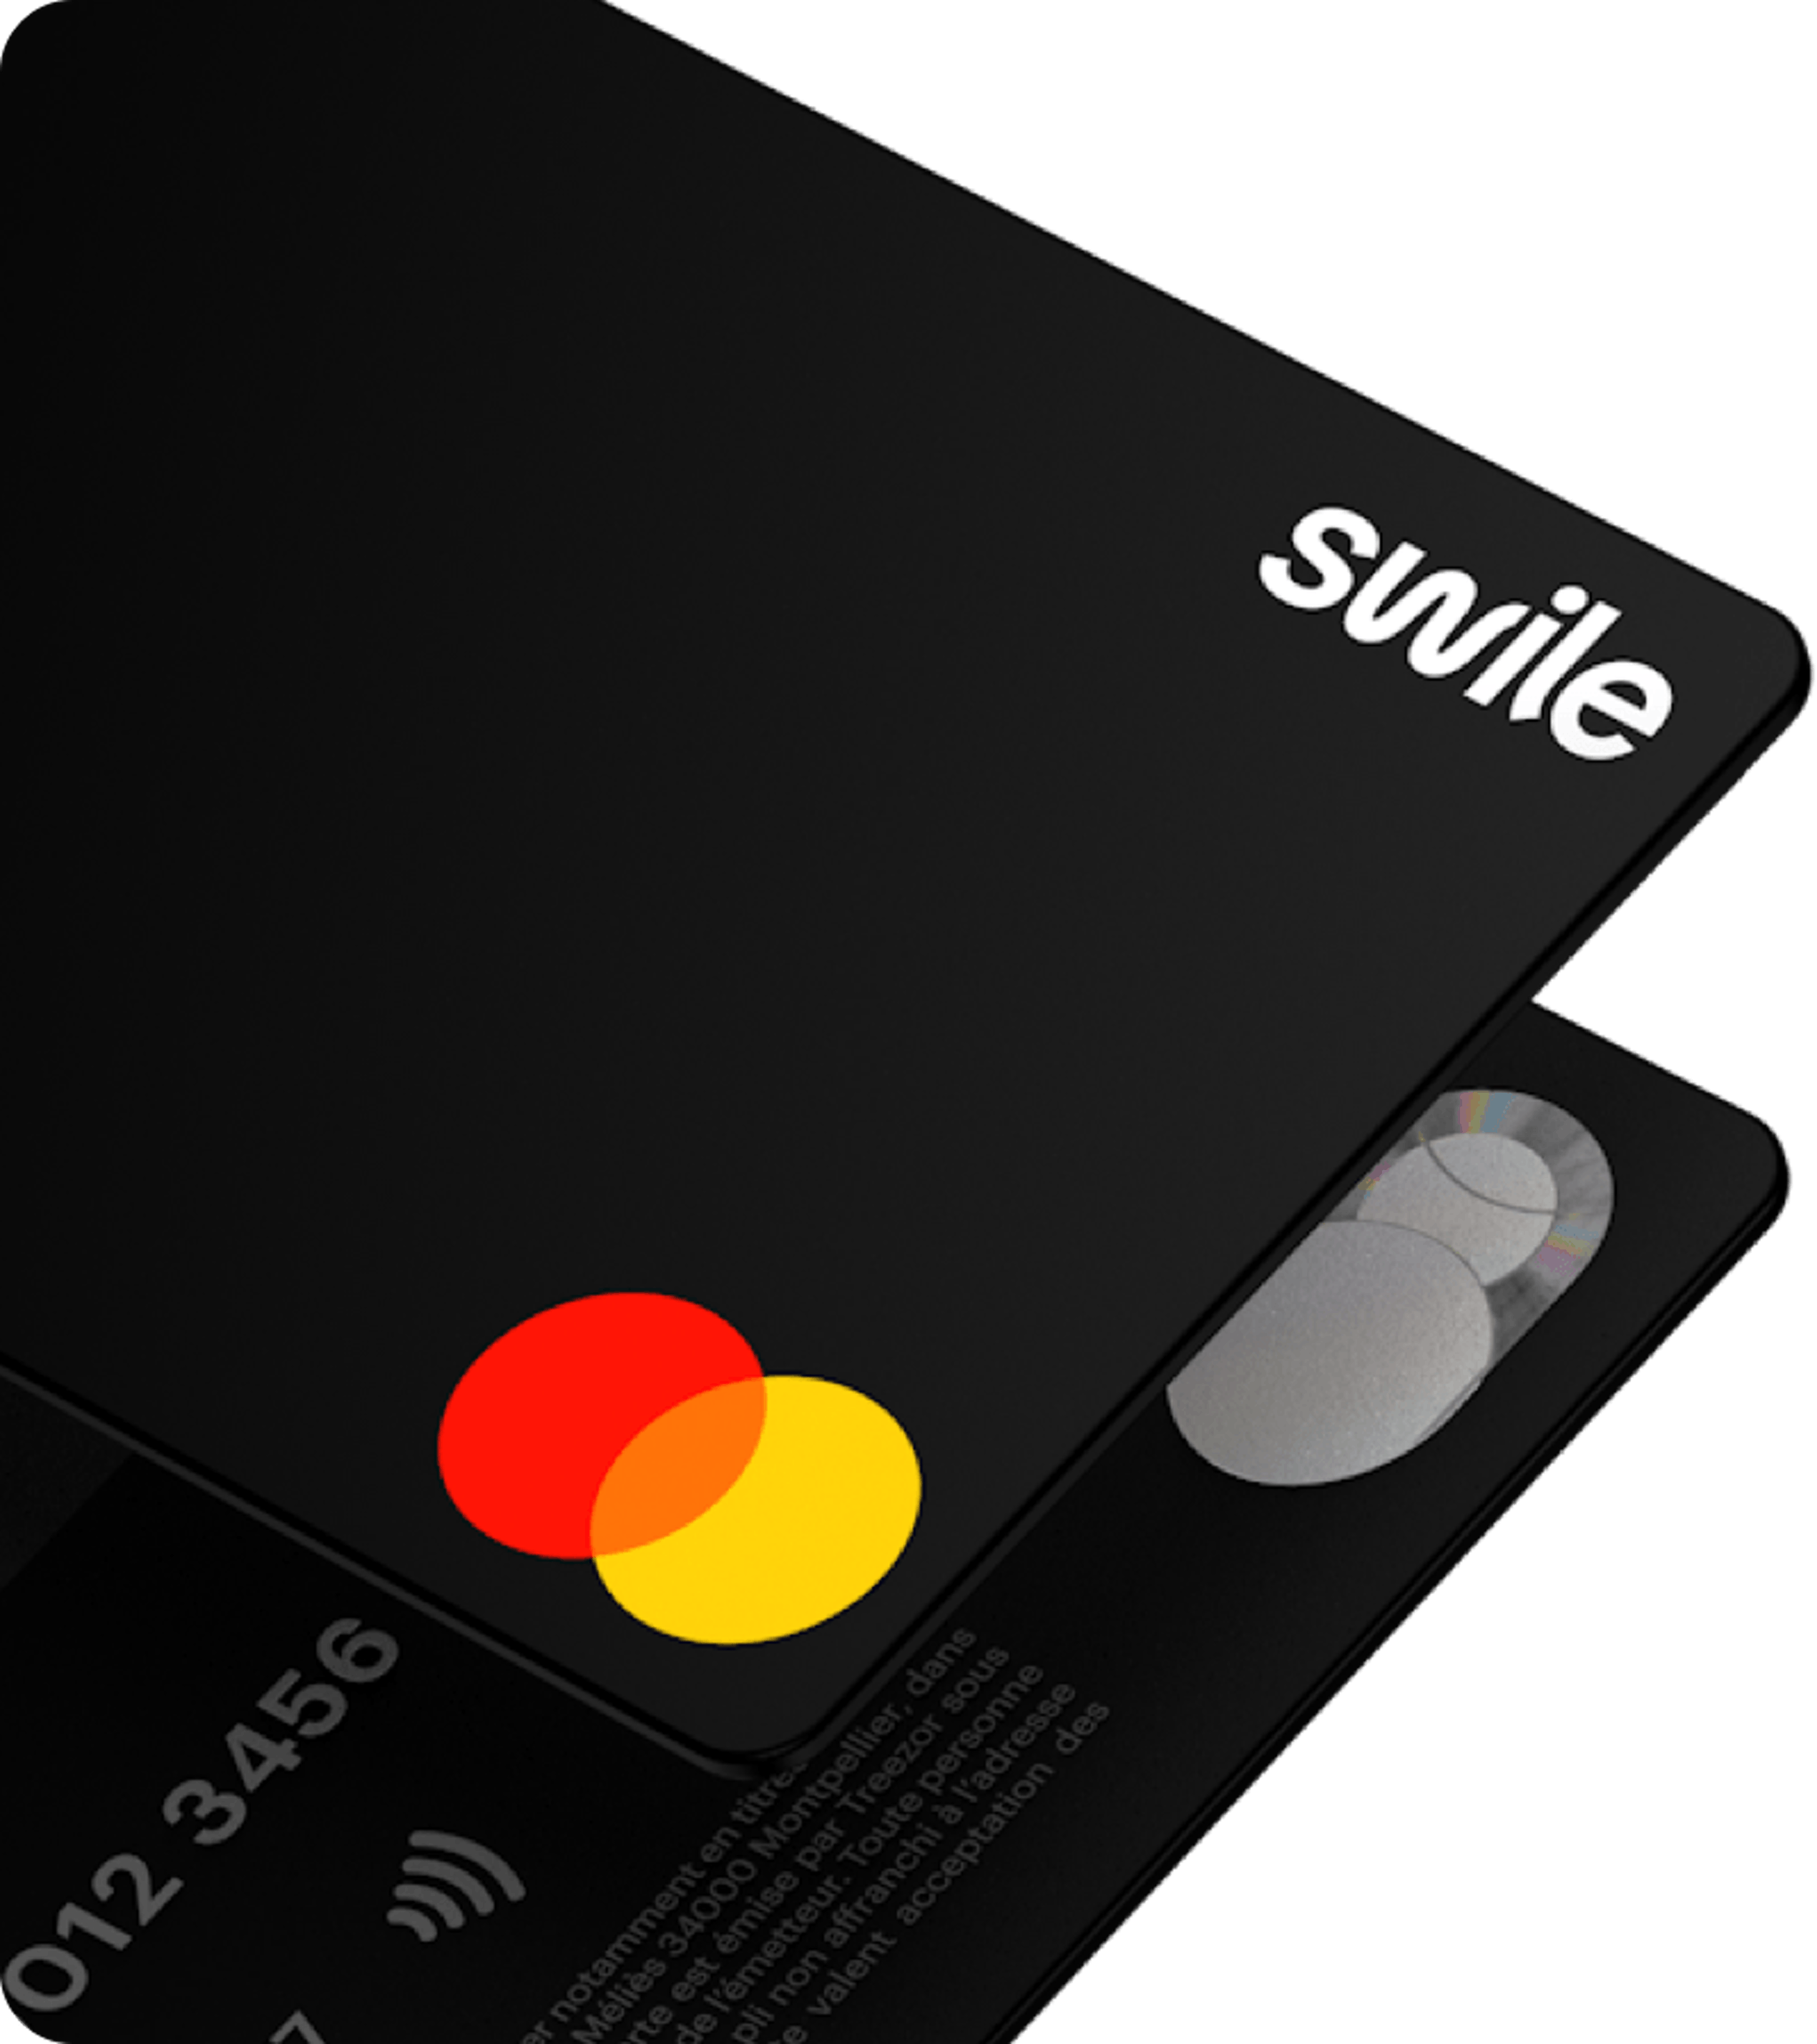 Swile Card is more than just mobility benefits.